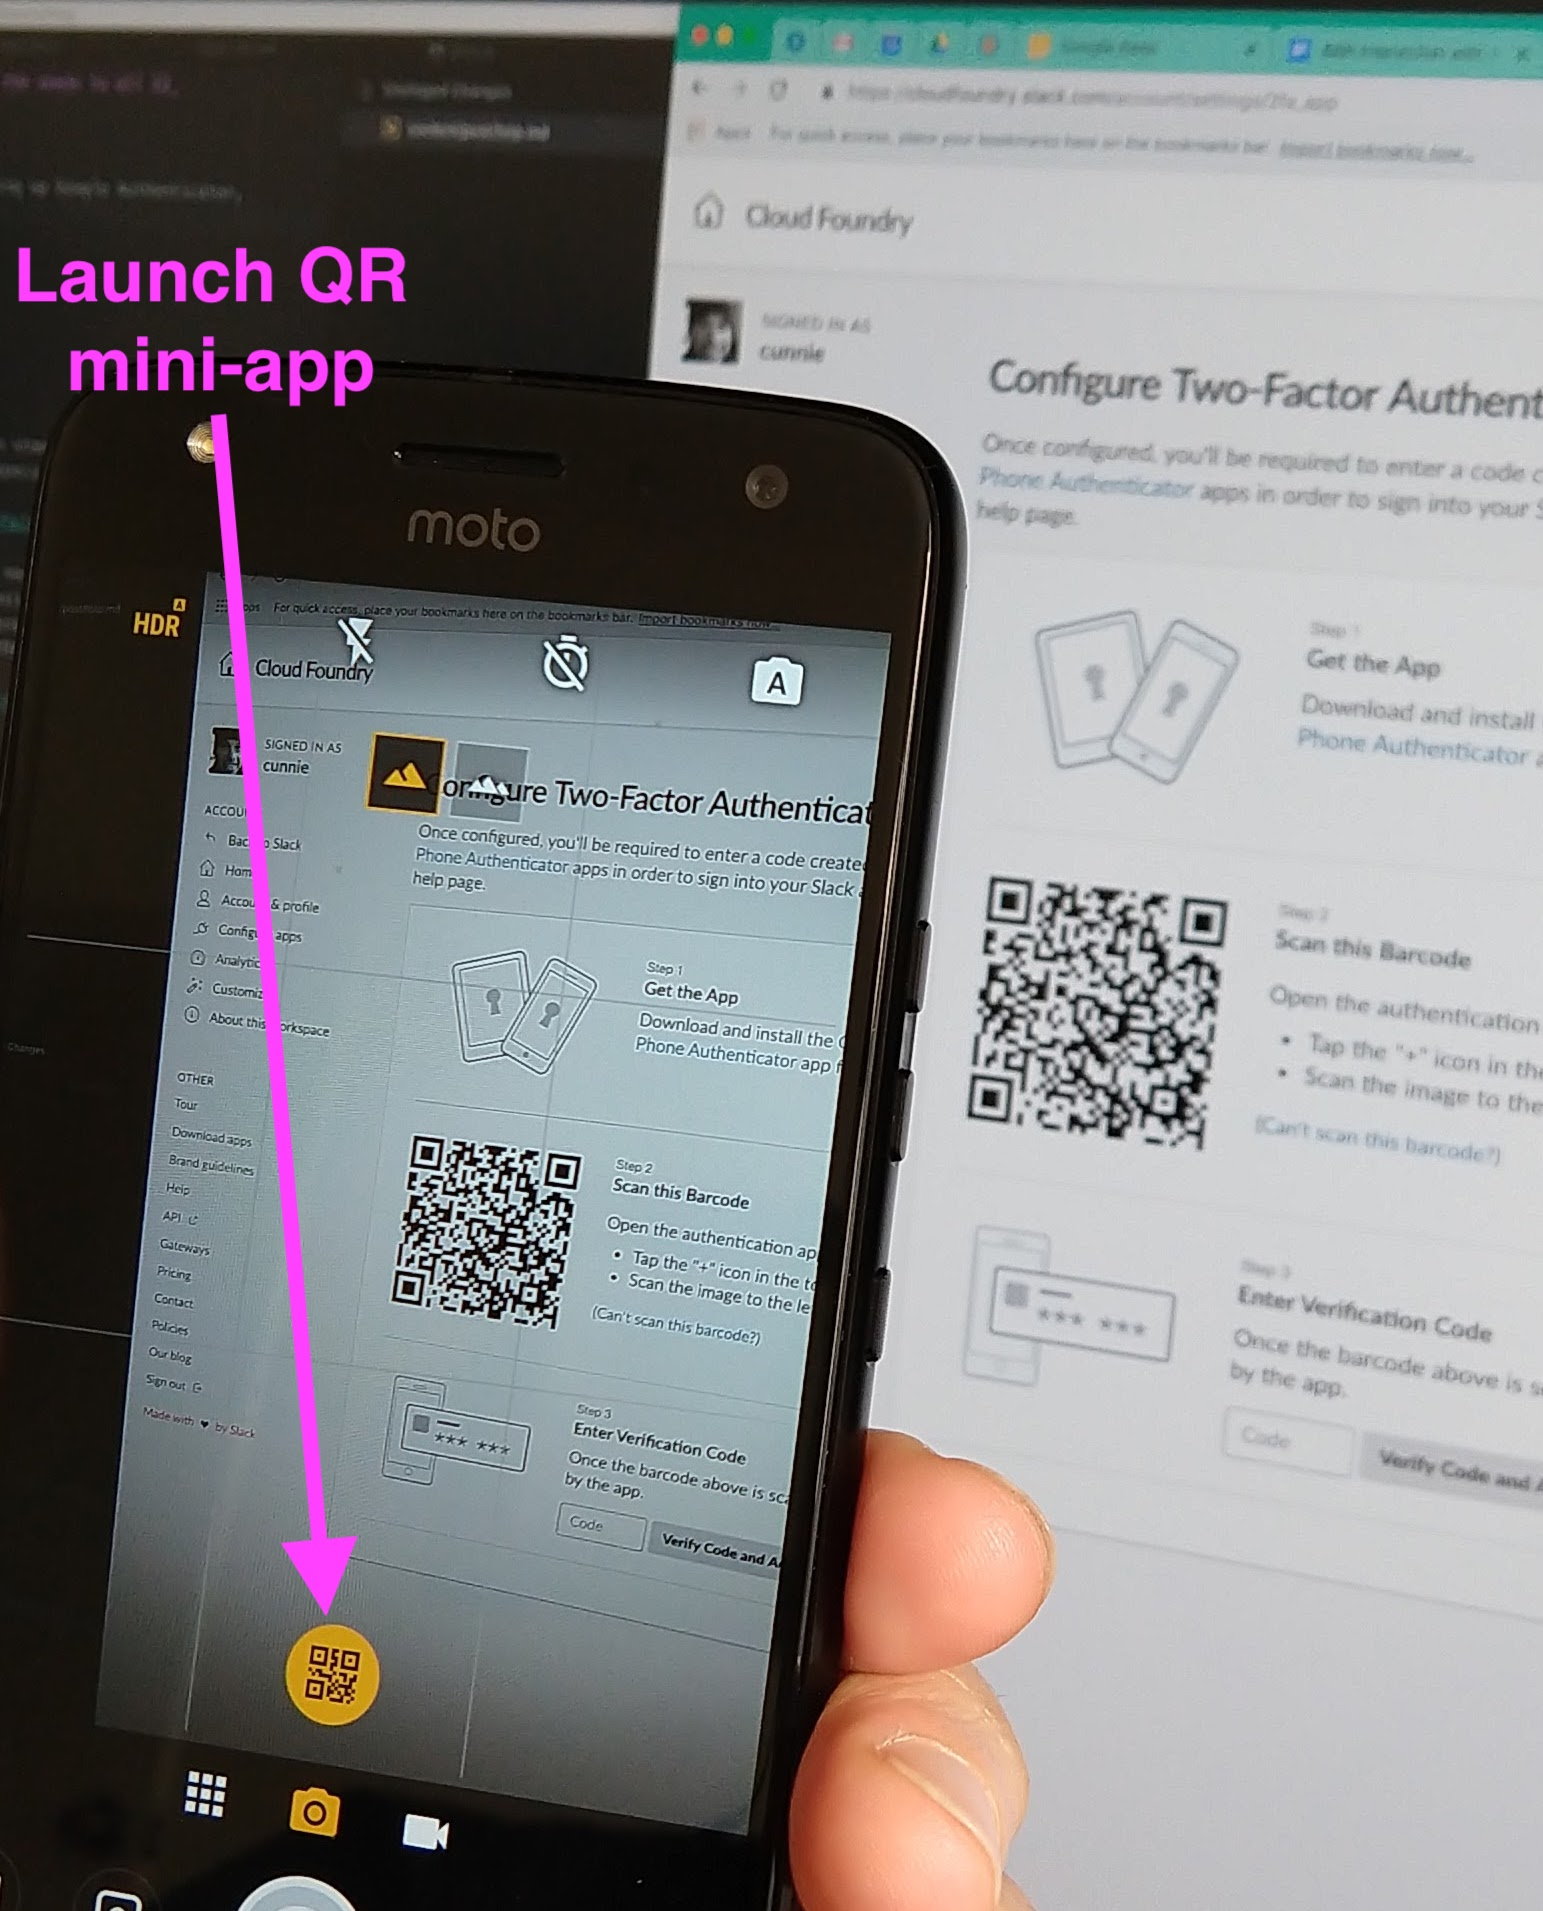 Scanning in a TOTP QR code